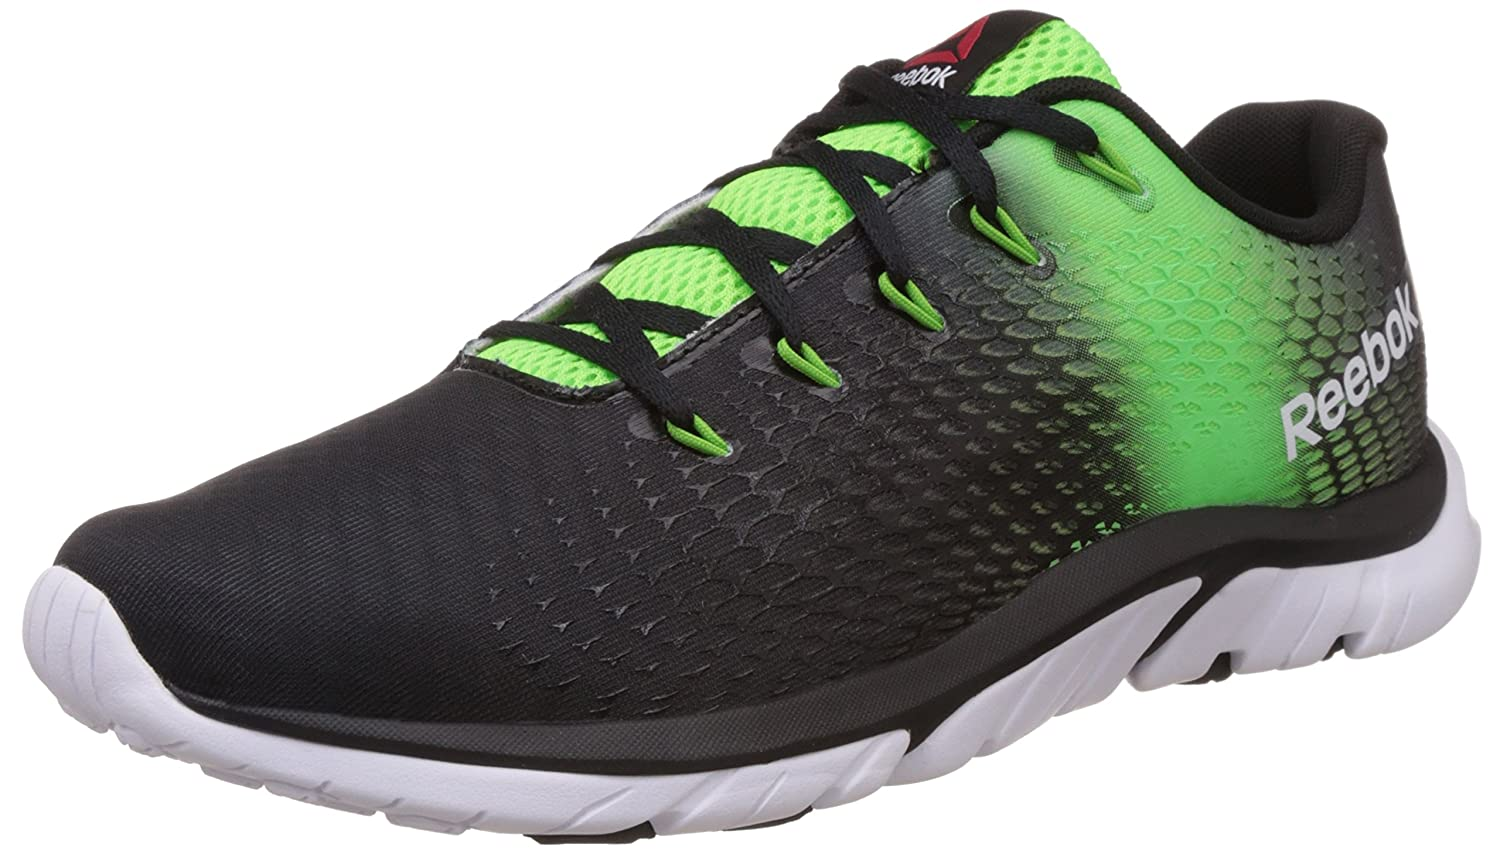 Reebok Men's Zstrike Elite Black, Green, Bright Green and White Running  Shoes - 11 UK: Buy Online at Low Prices in India - Amazon.in